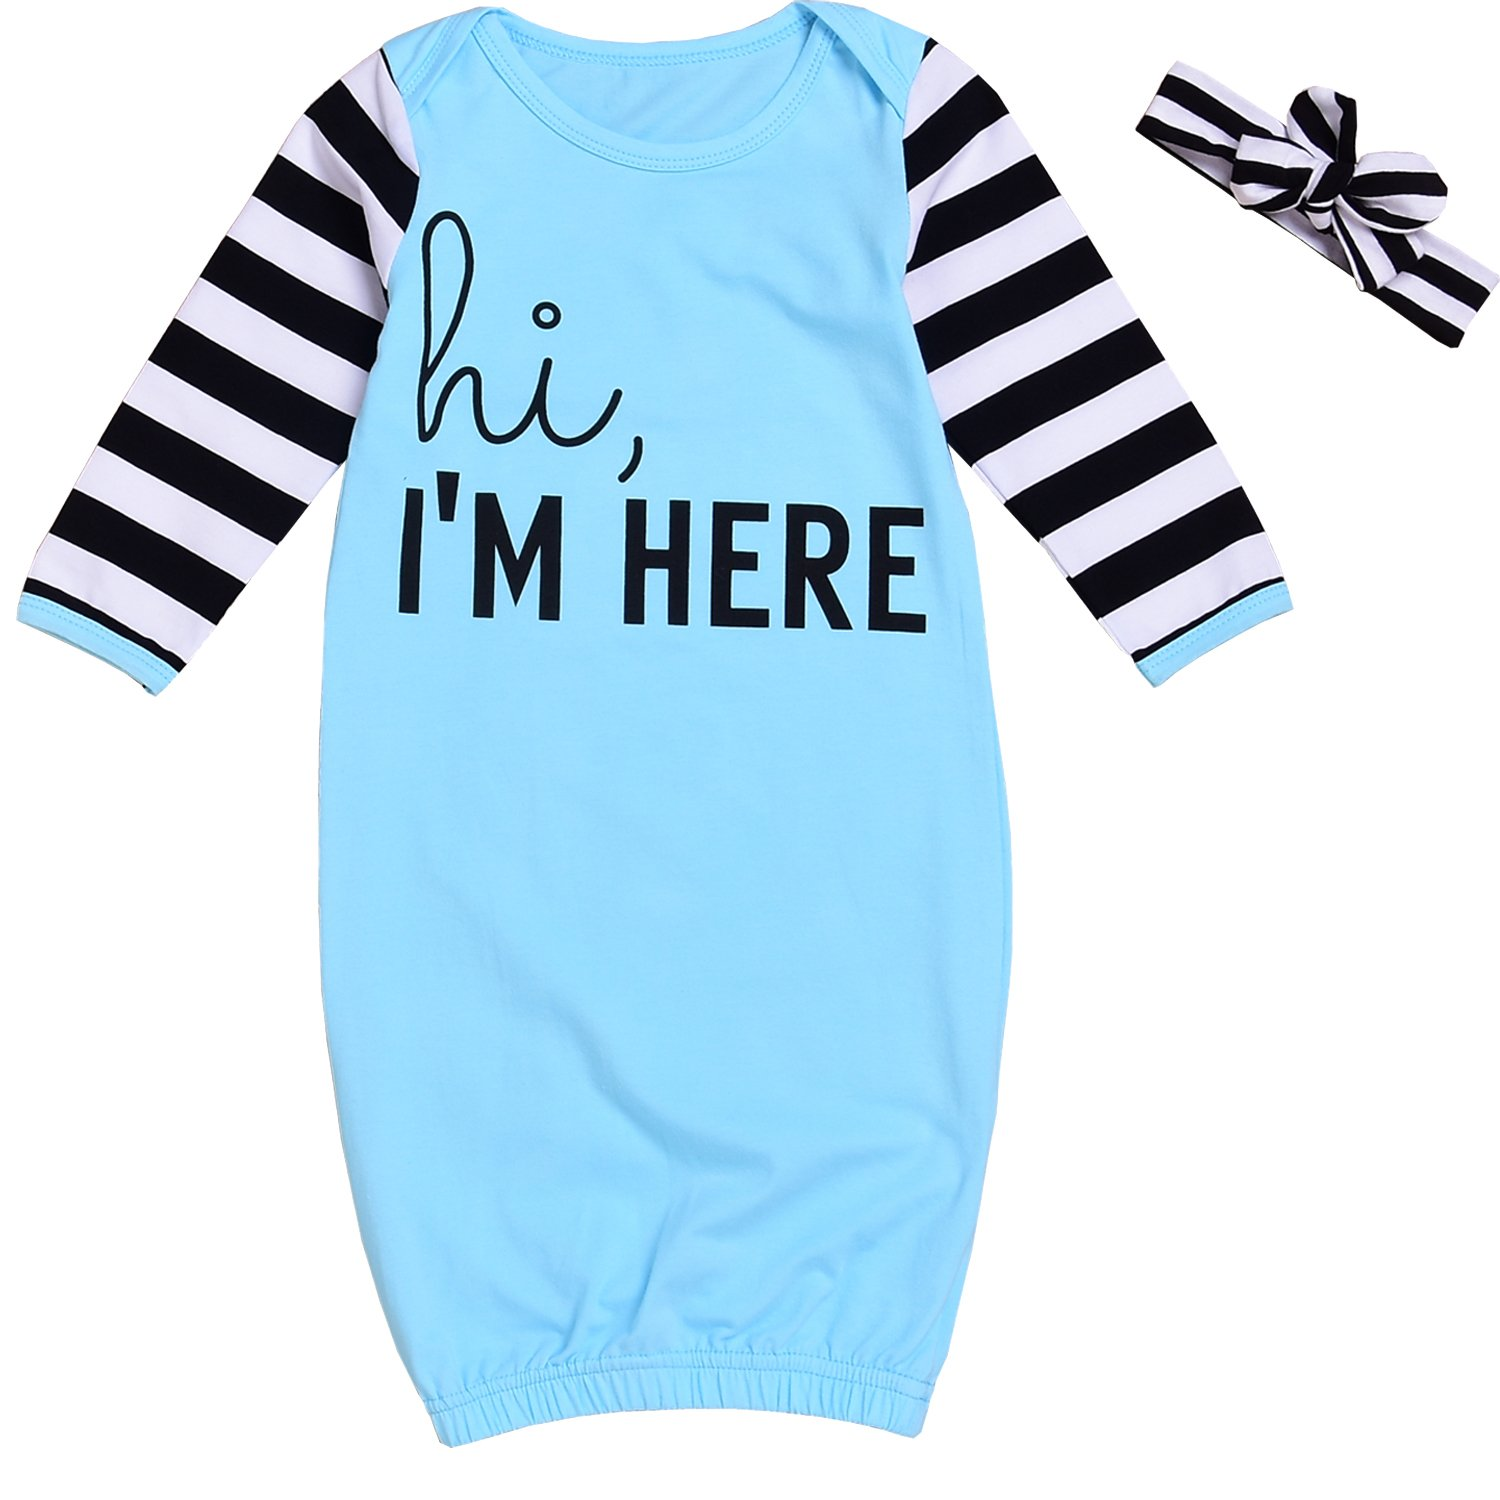 30f77d6eca39 Material: cotton,high quality, soft and comfortable, fit for baby skin ❤ Long  sleeve leg-covered sleeping bag, give your baby a comfortable sleep